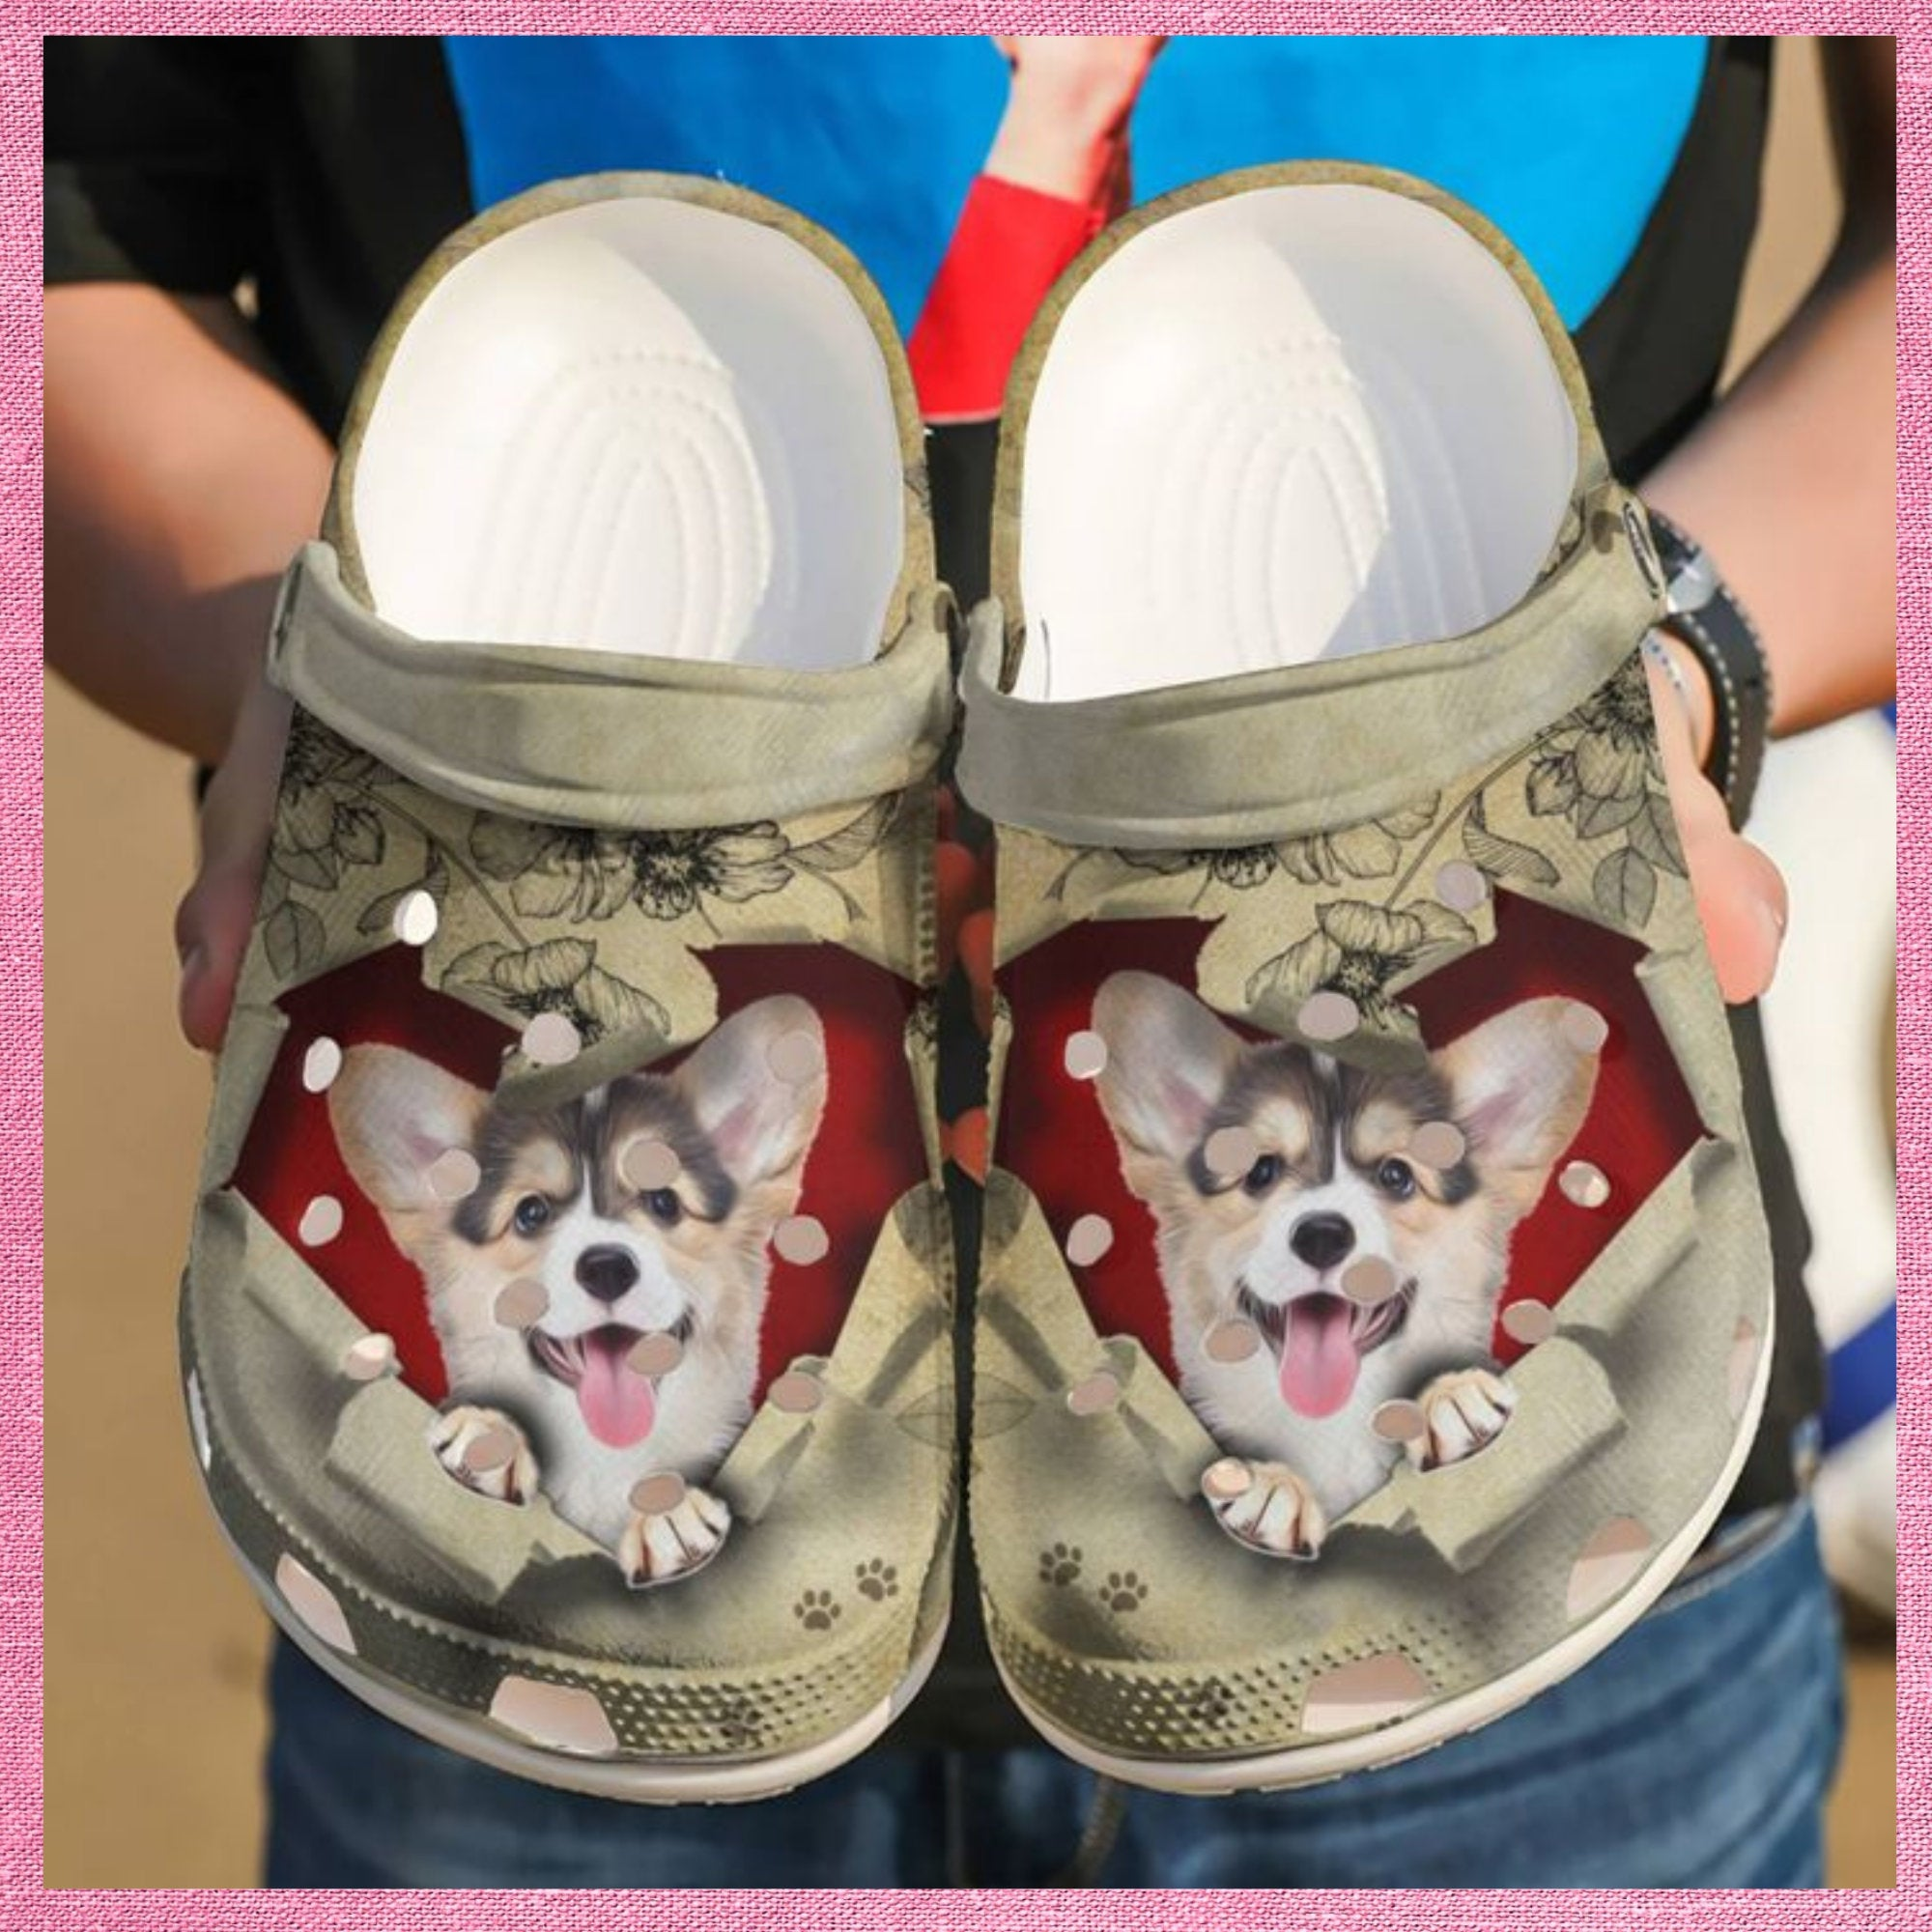 Corgi They Steal My Heart Crocs Clog Shoes